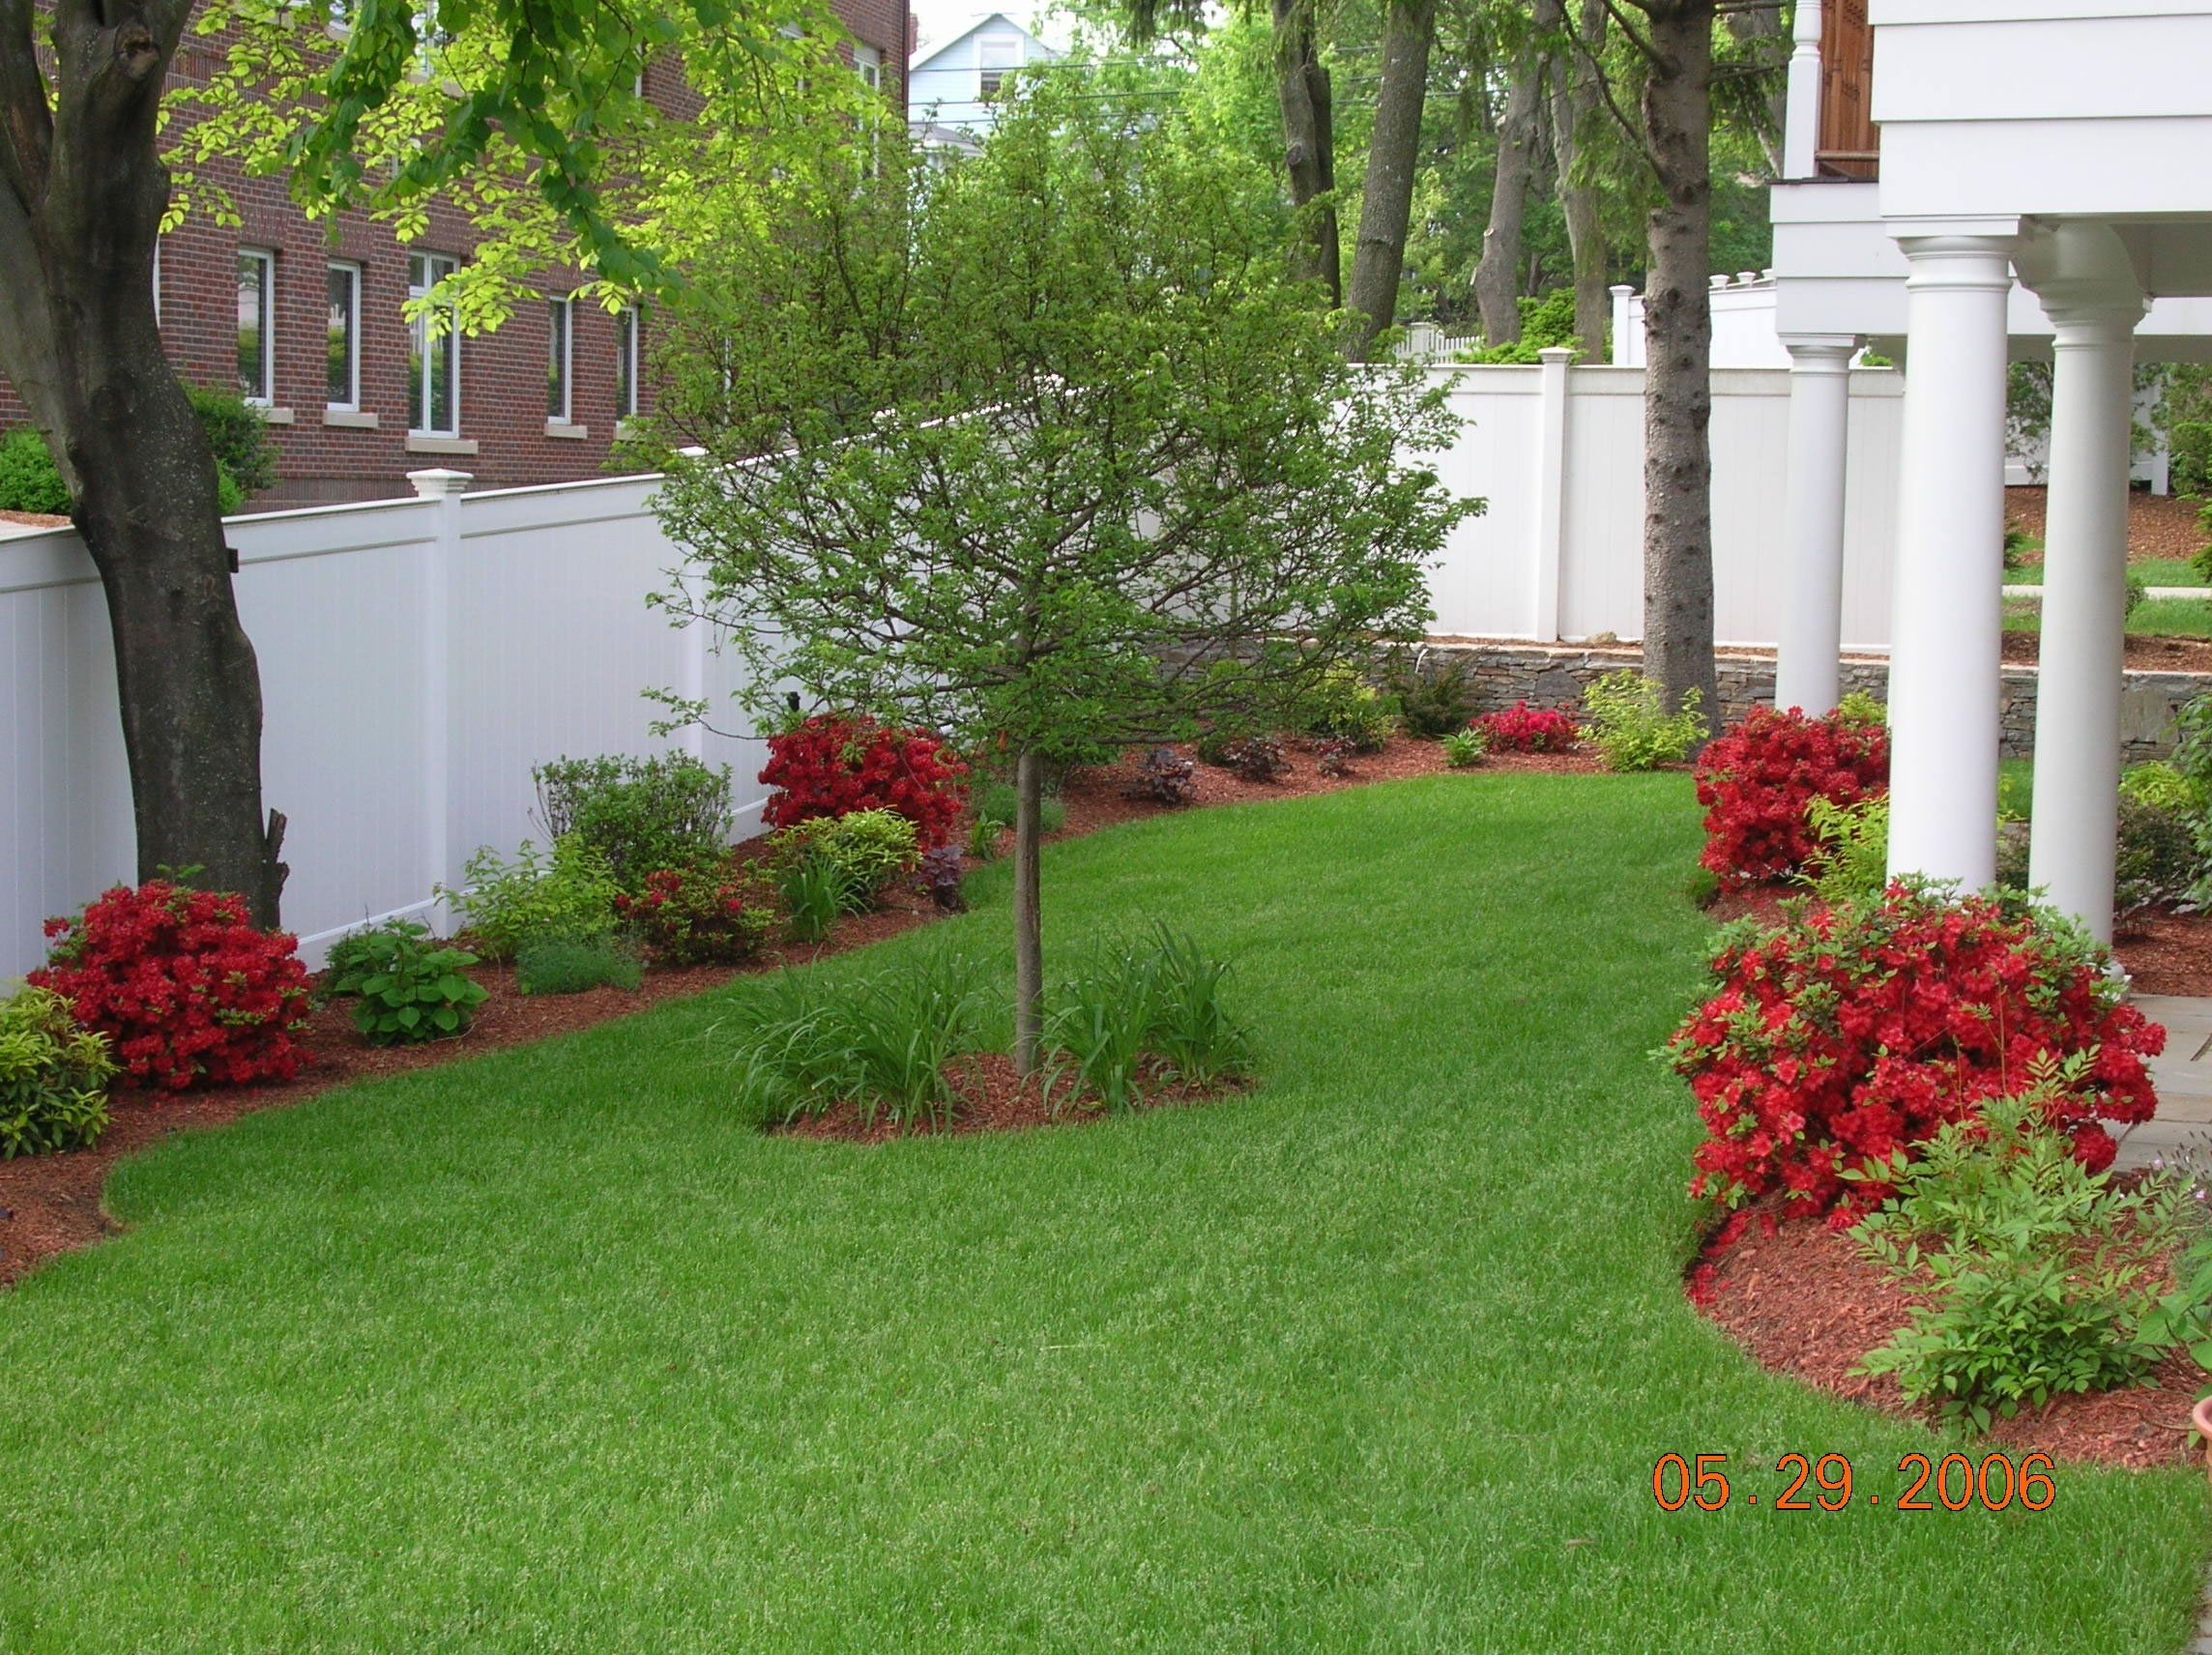 Top 10 simple diy landscaping ideas seek diy for Small simple garden design ideas